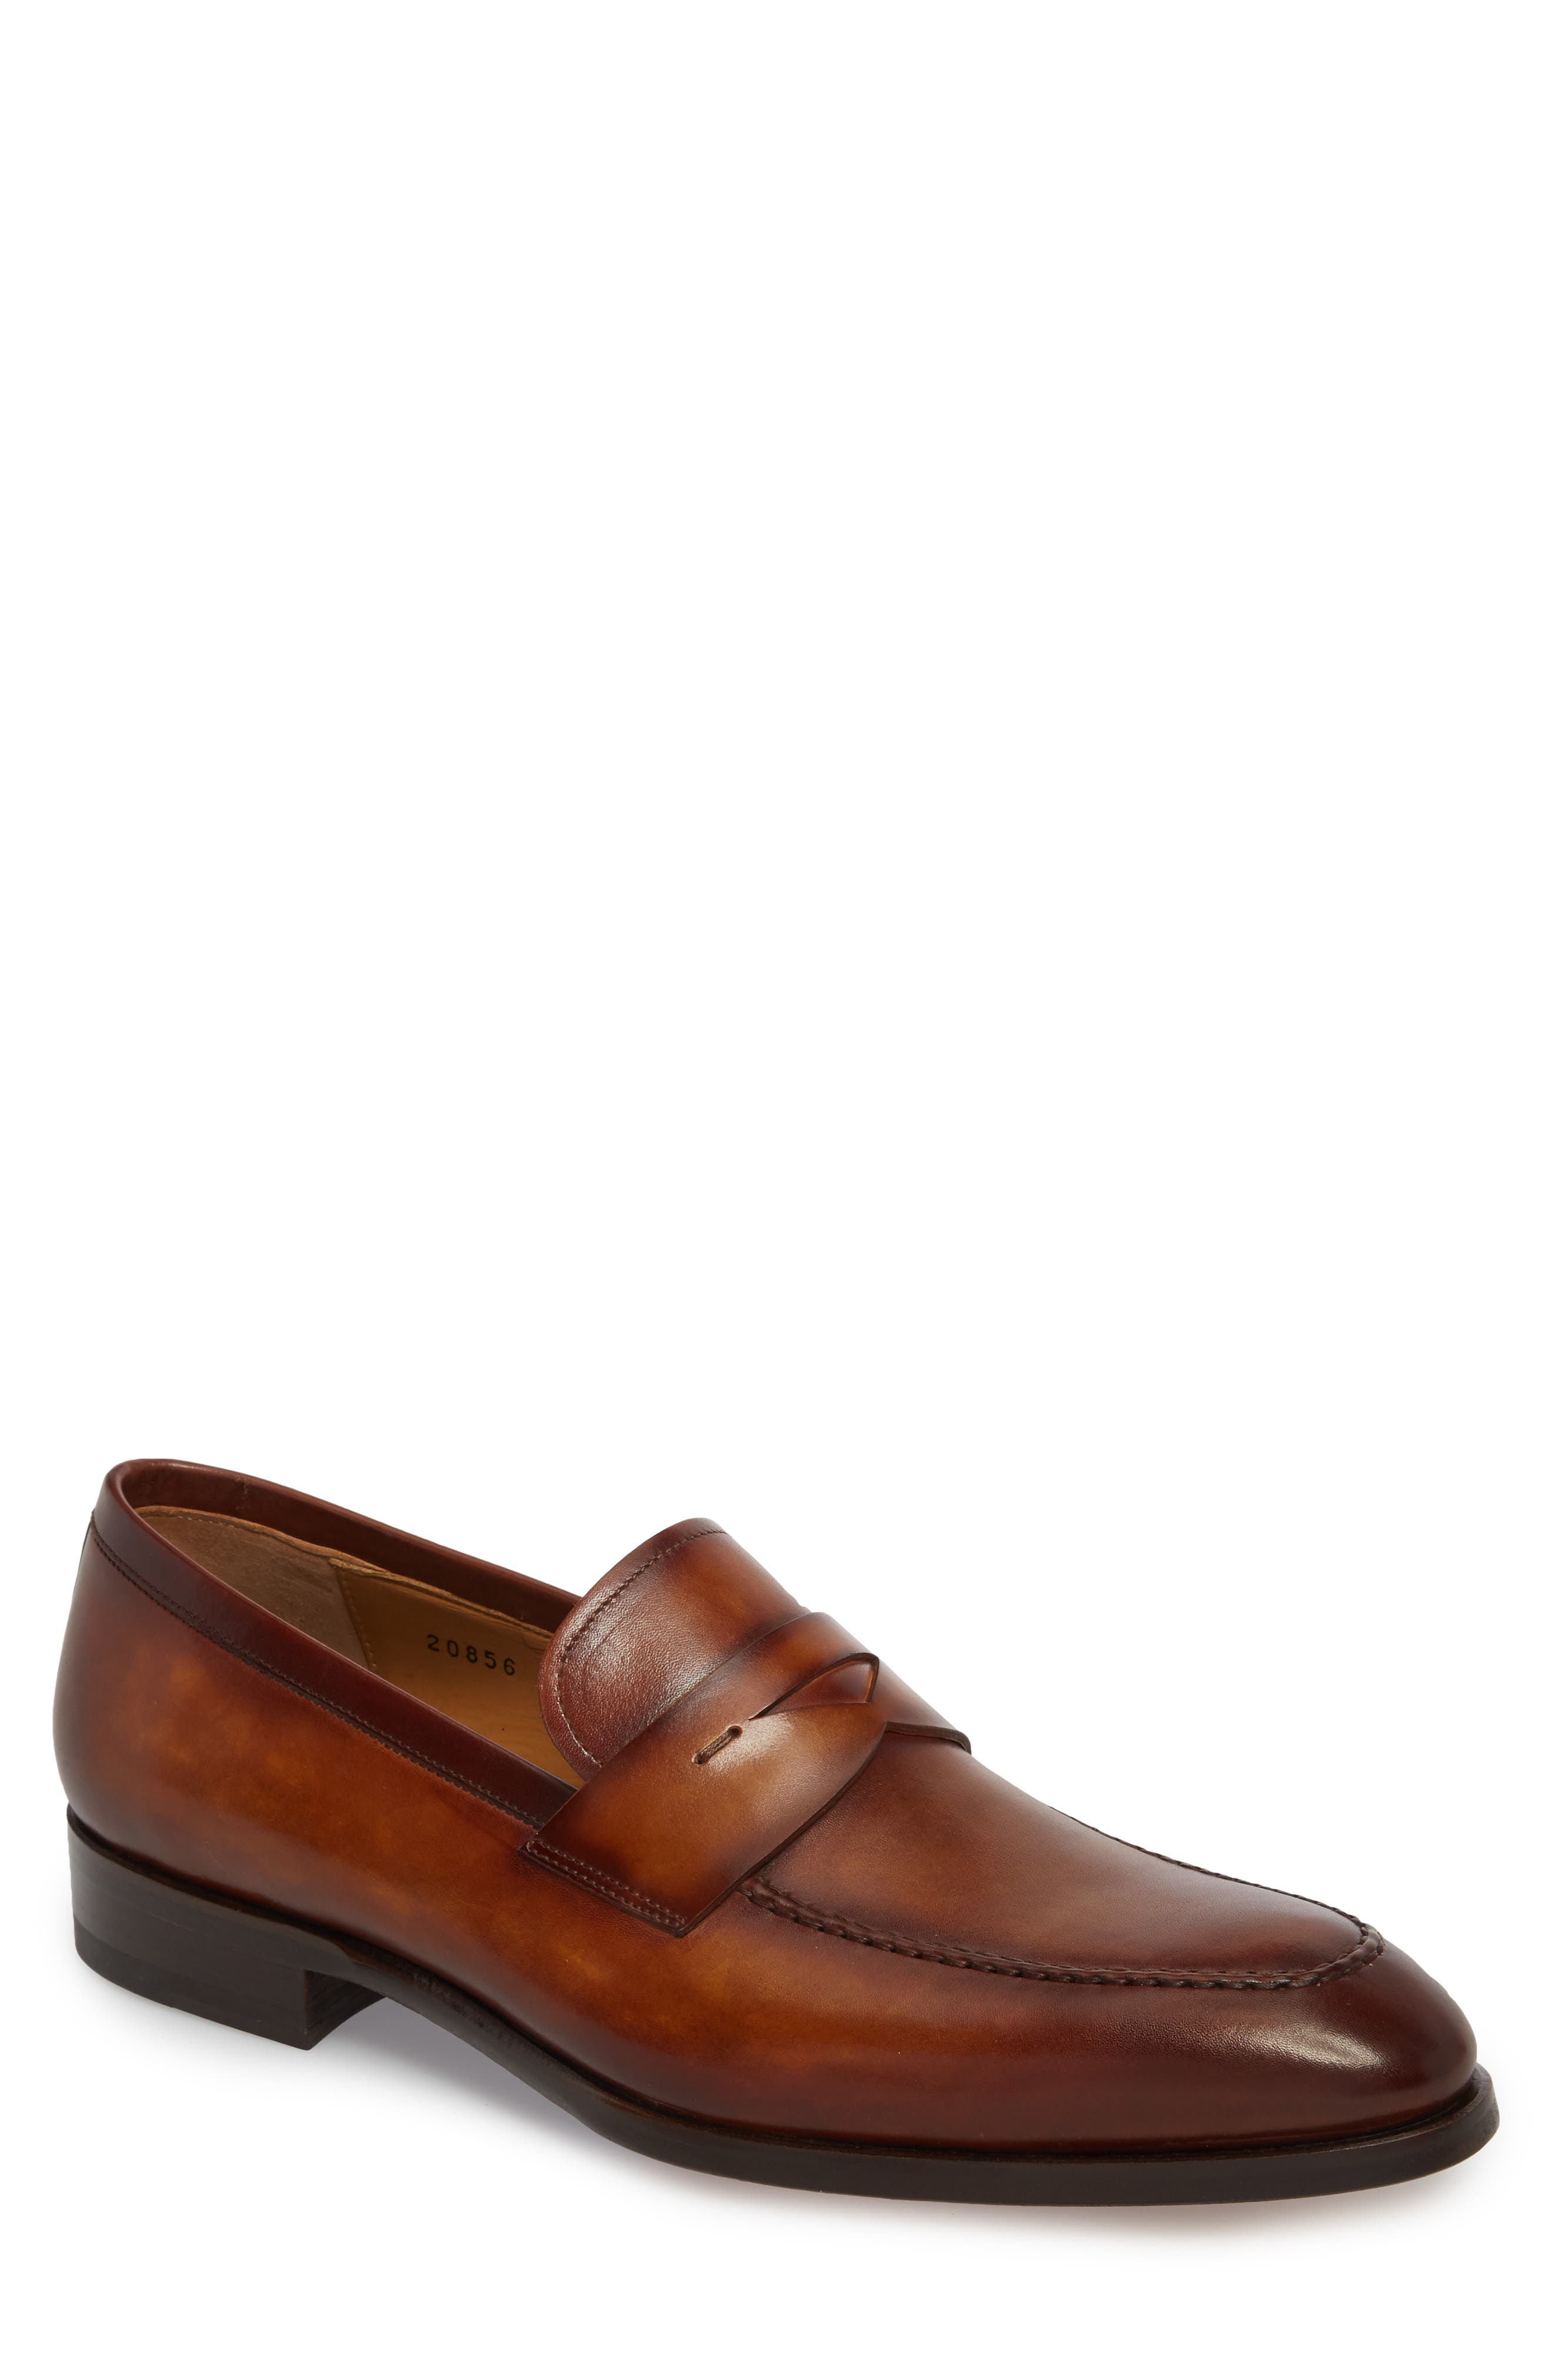 Rolly Apron Toe Penny Loafer,                         Main,                         color, Brown Leather